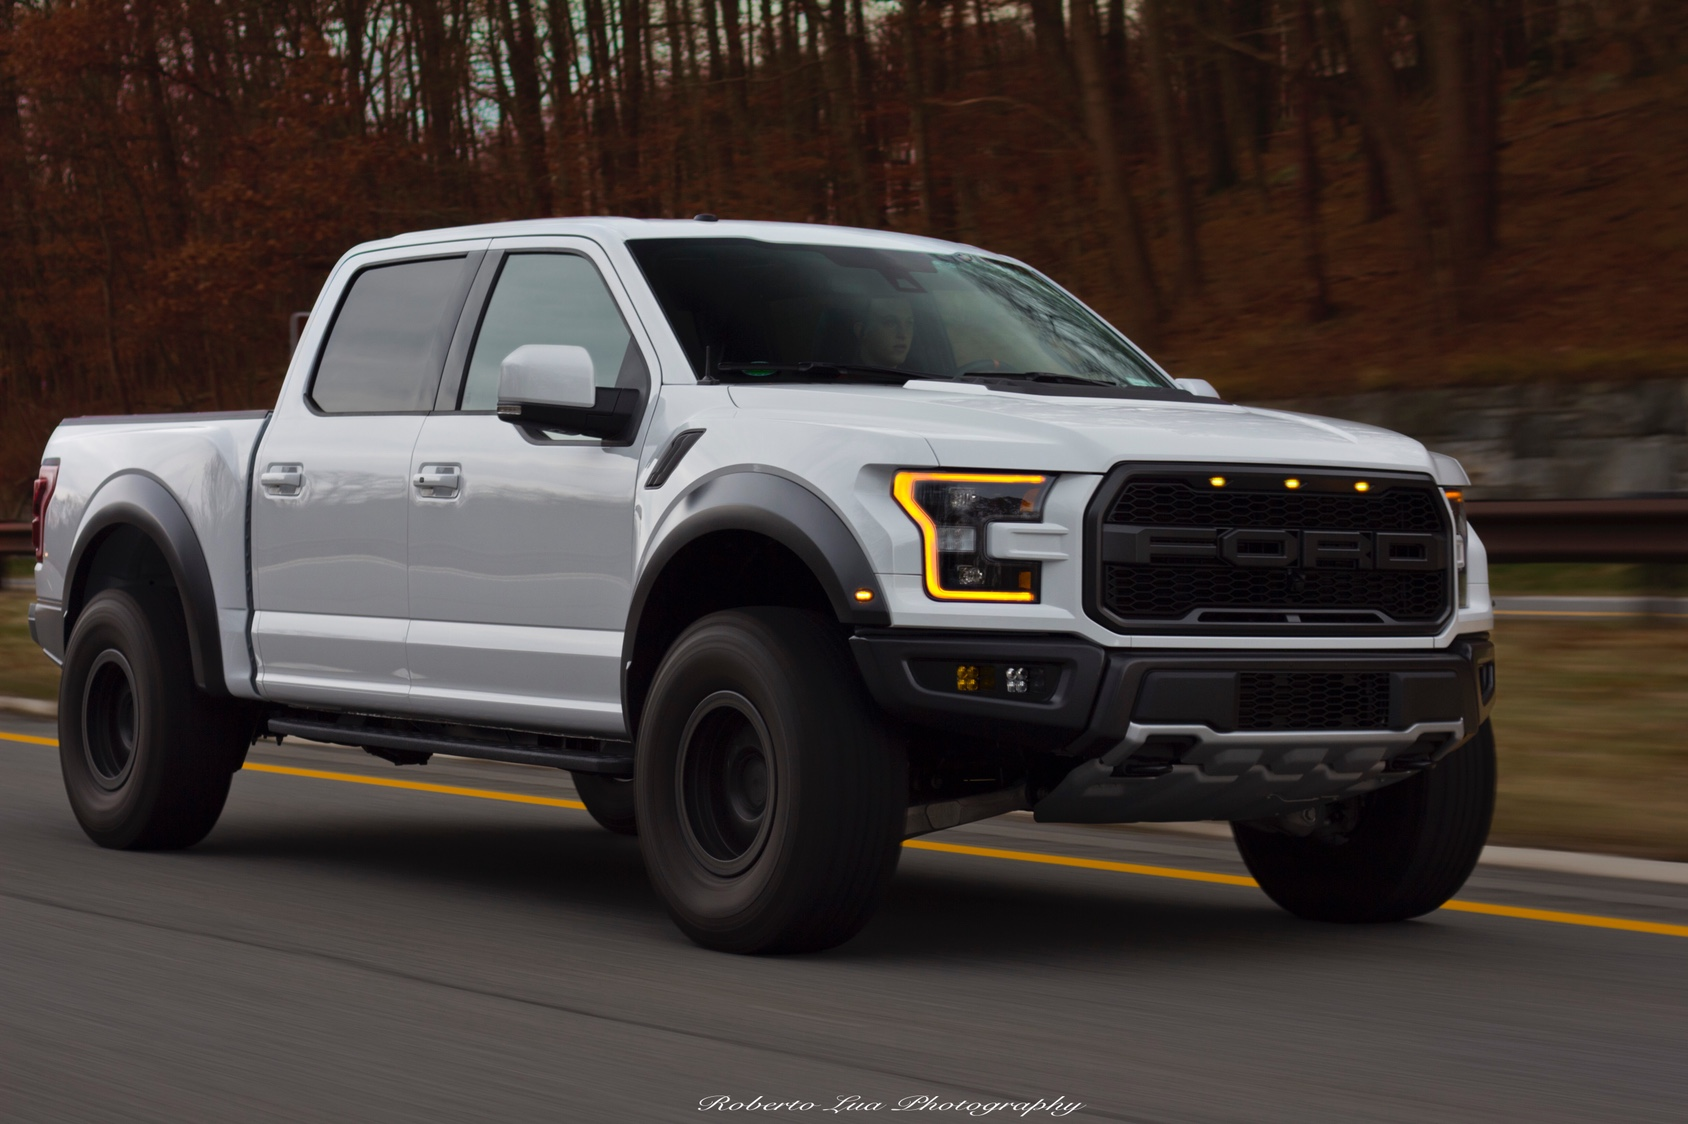 2019 calendar pictures page 5 ford raptor forum ford svt raptor forums ford raptor. Black Bedroom Furniture Sets. Home Design Ideas